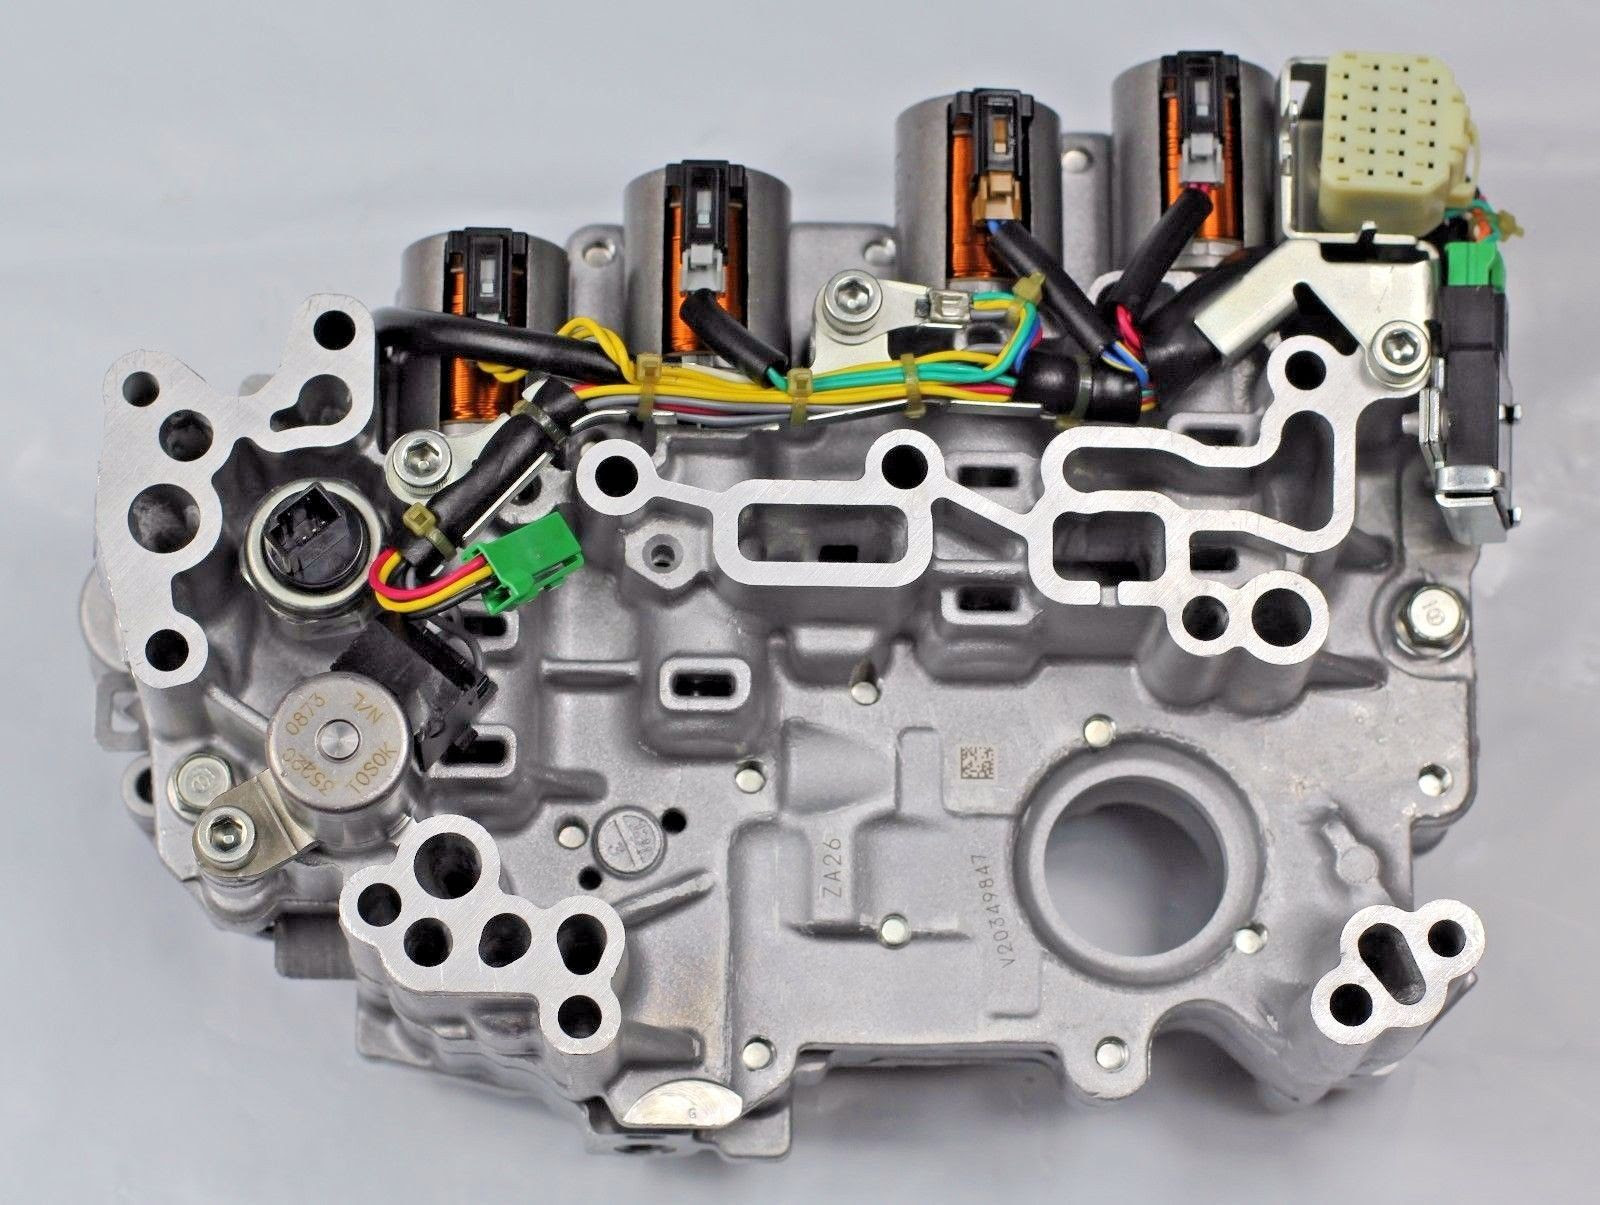 Nissan Cvt Valve Body Replacement